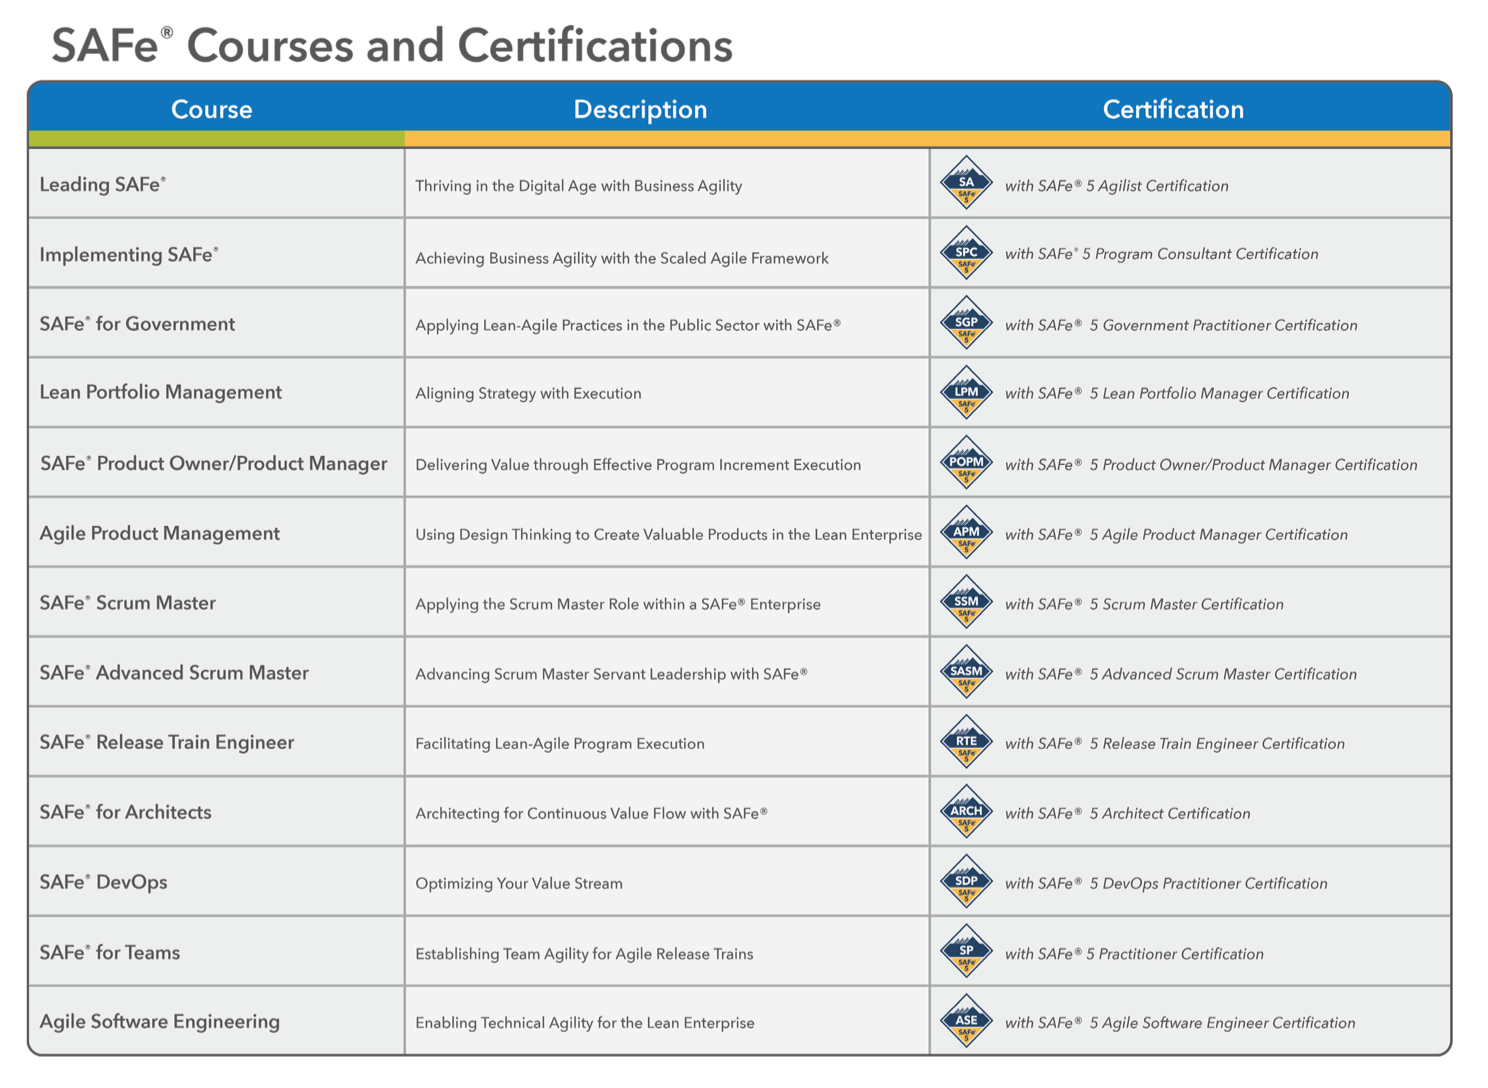 List of  SAFe Courses and Certifications